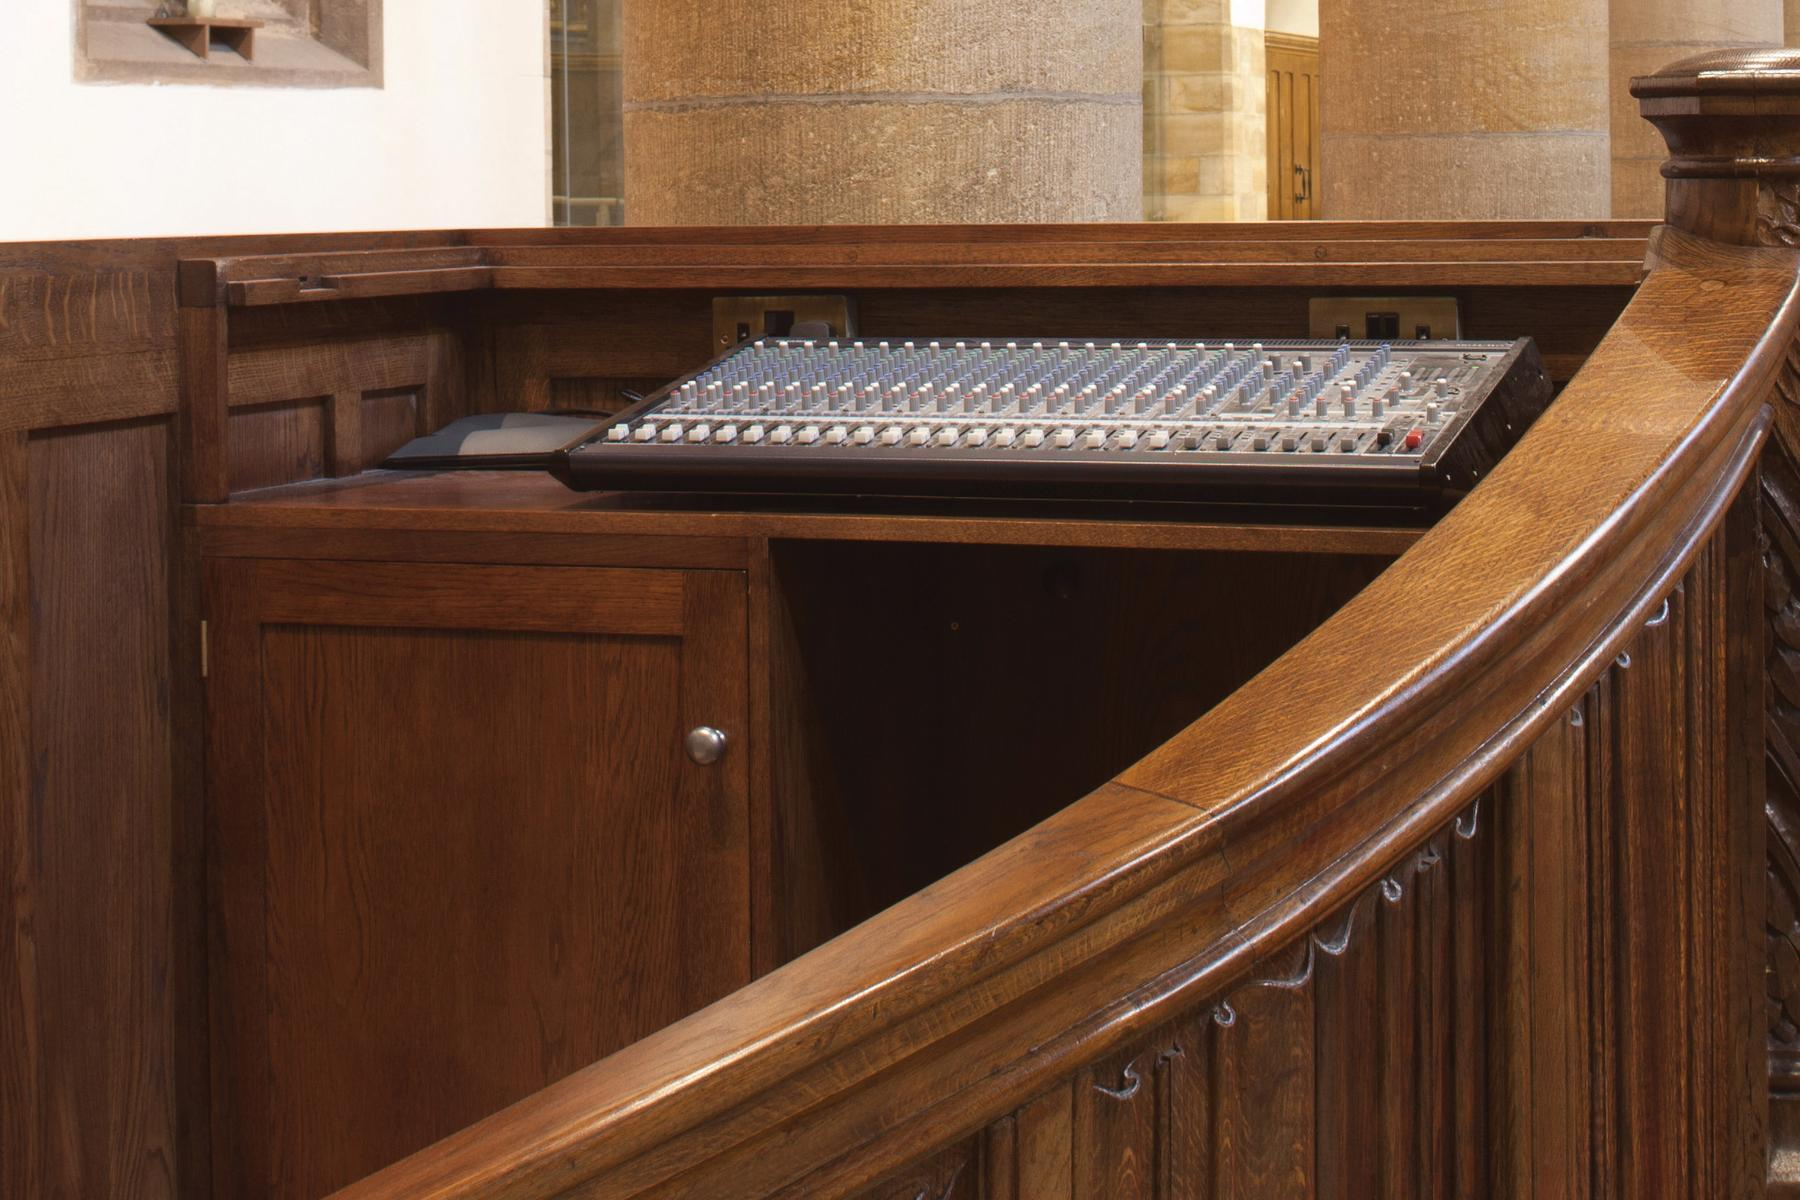 St Chad's Headingley, audio visual desk in converted pulpit